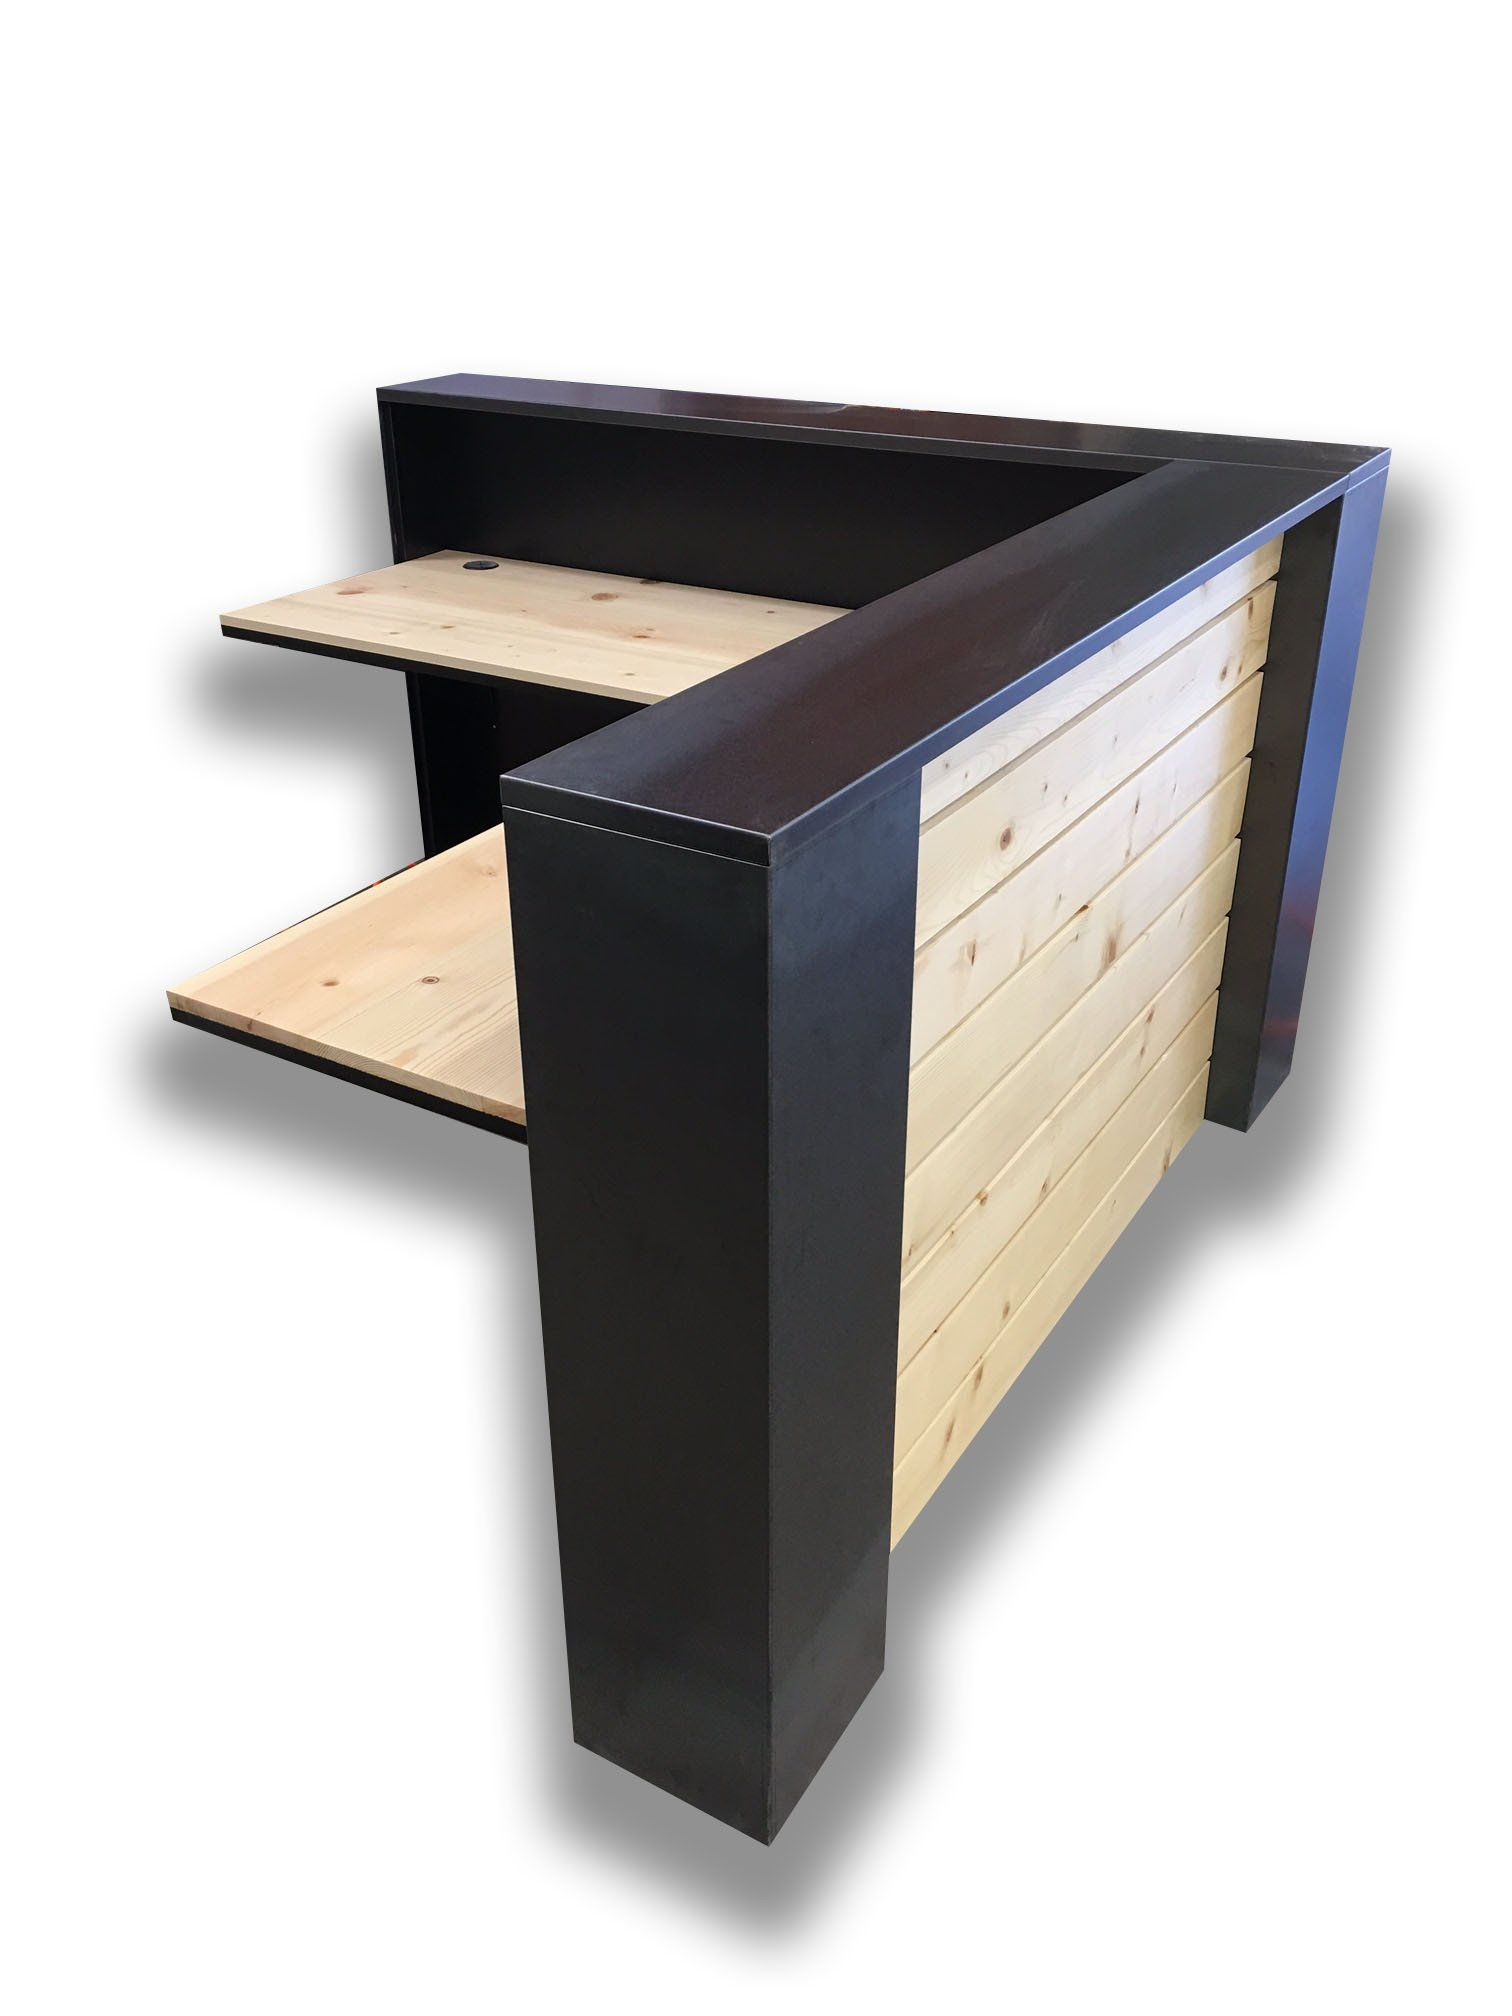 promo code 9f1b2 4e6a1 Dallas reception desk or sales counter | Products in 2019 ...